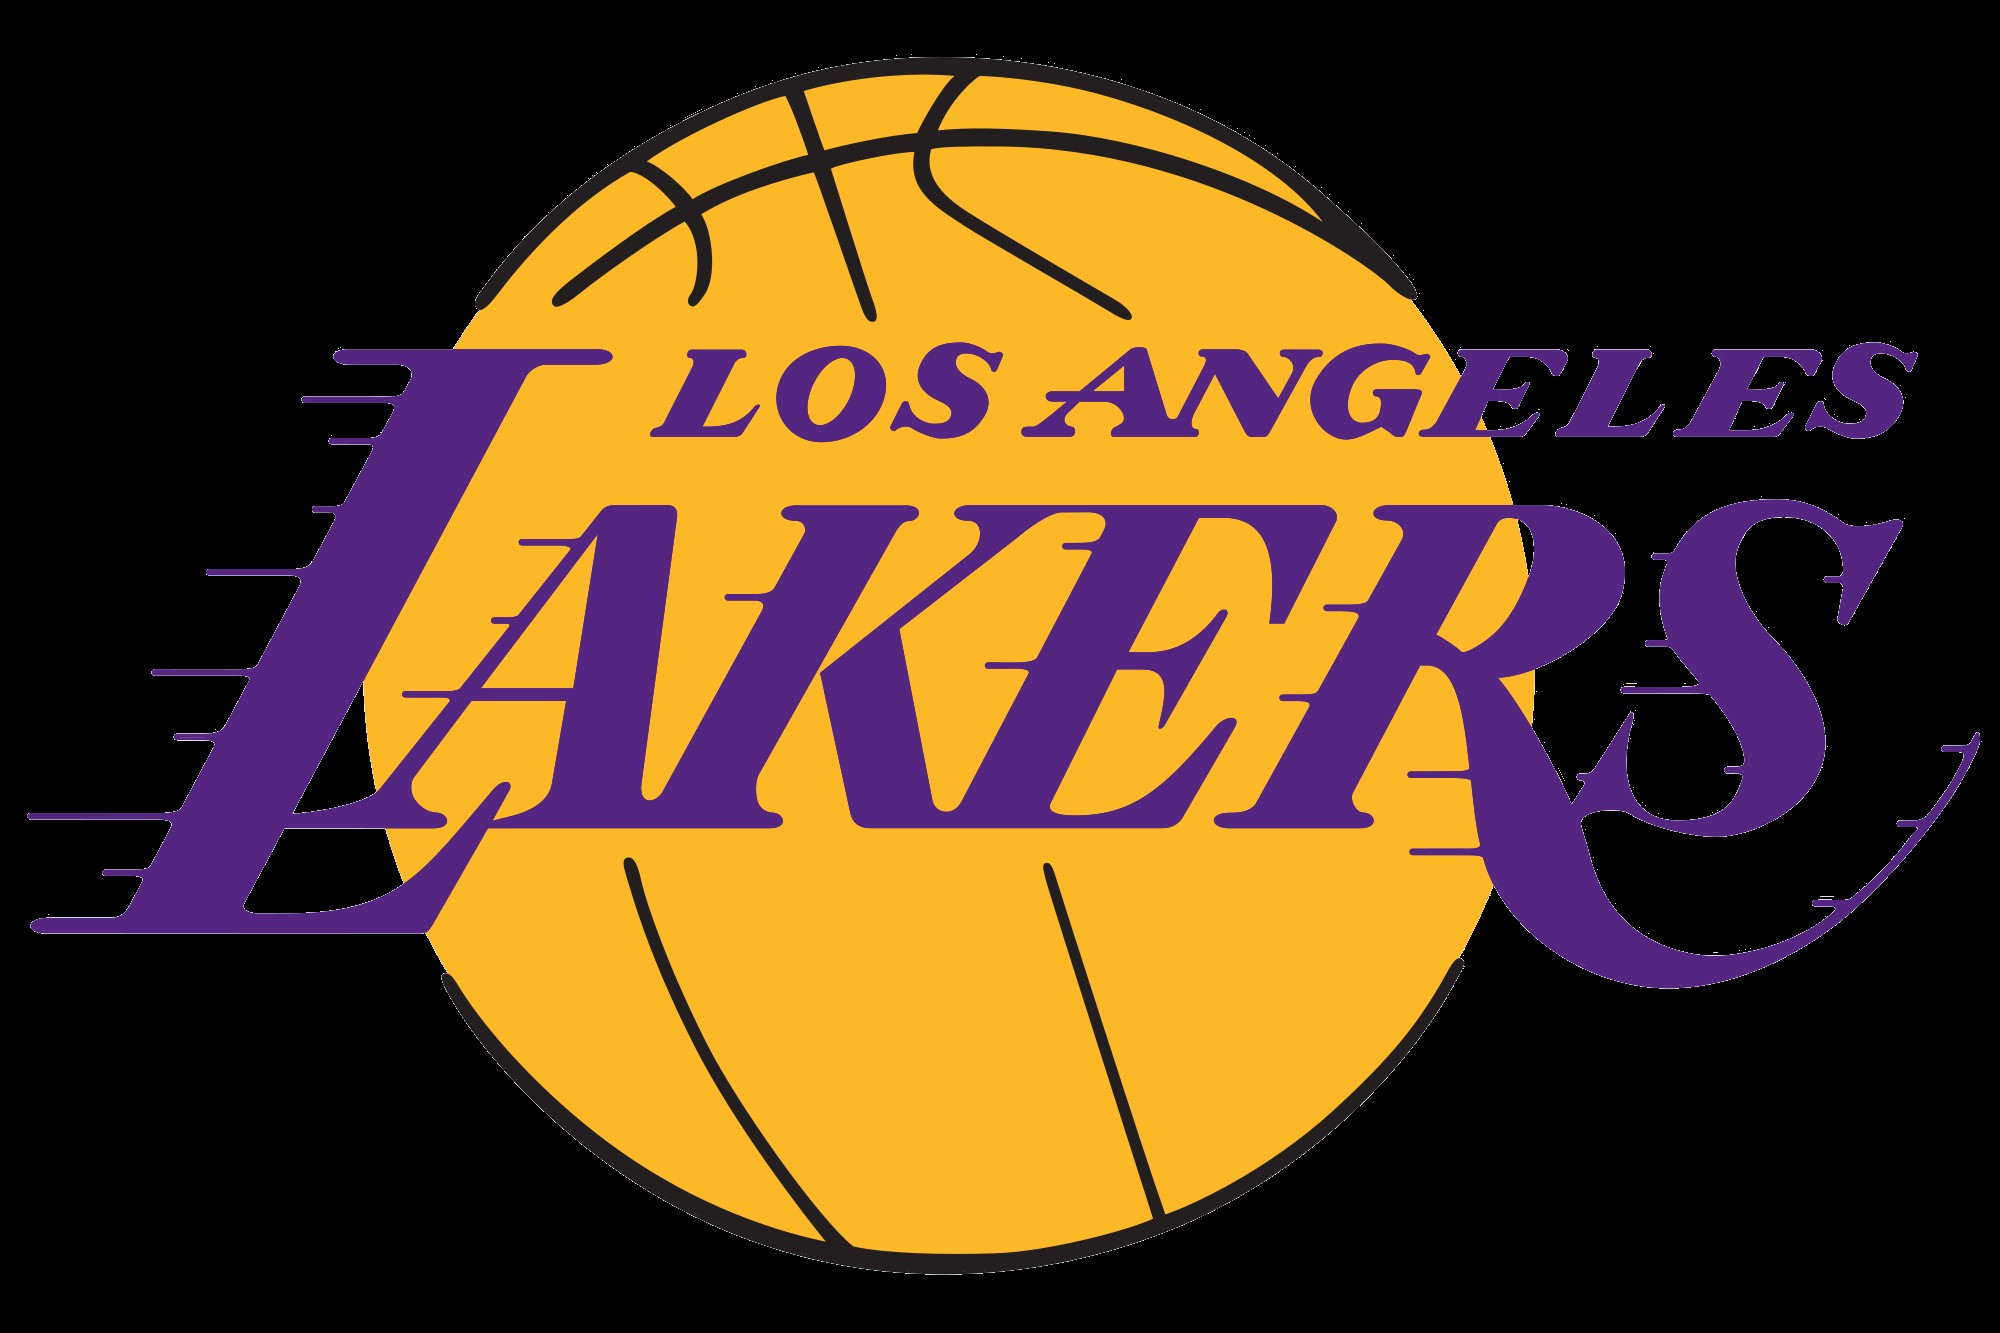 Most Popular Los Angeles Lakers Wallpapers